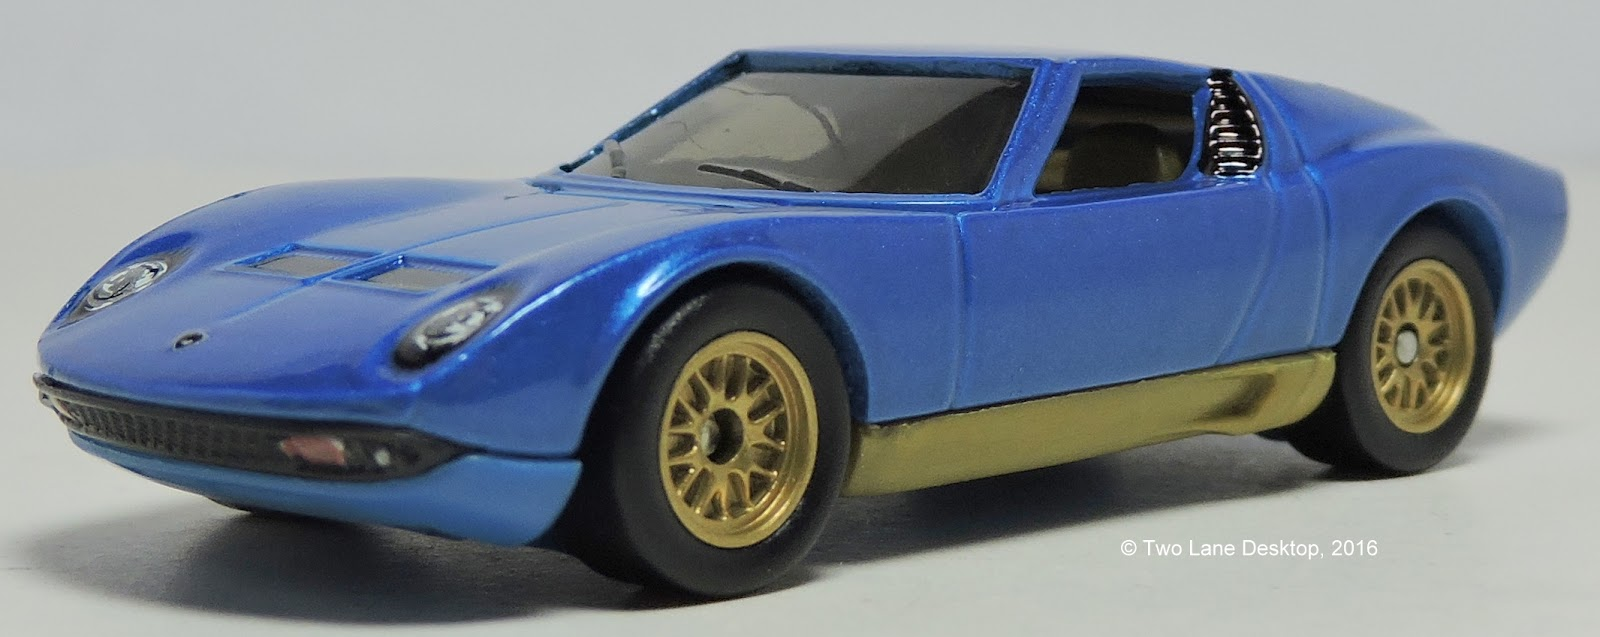 Kinsmart 1 32 And Matchbox 1 64 Lamborghini Miura Two Lane Desktop